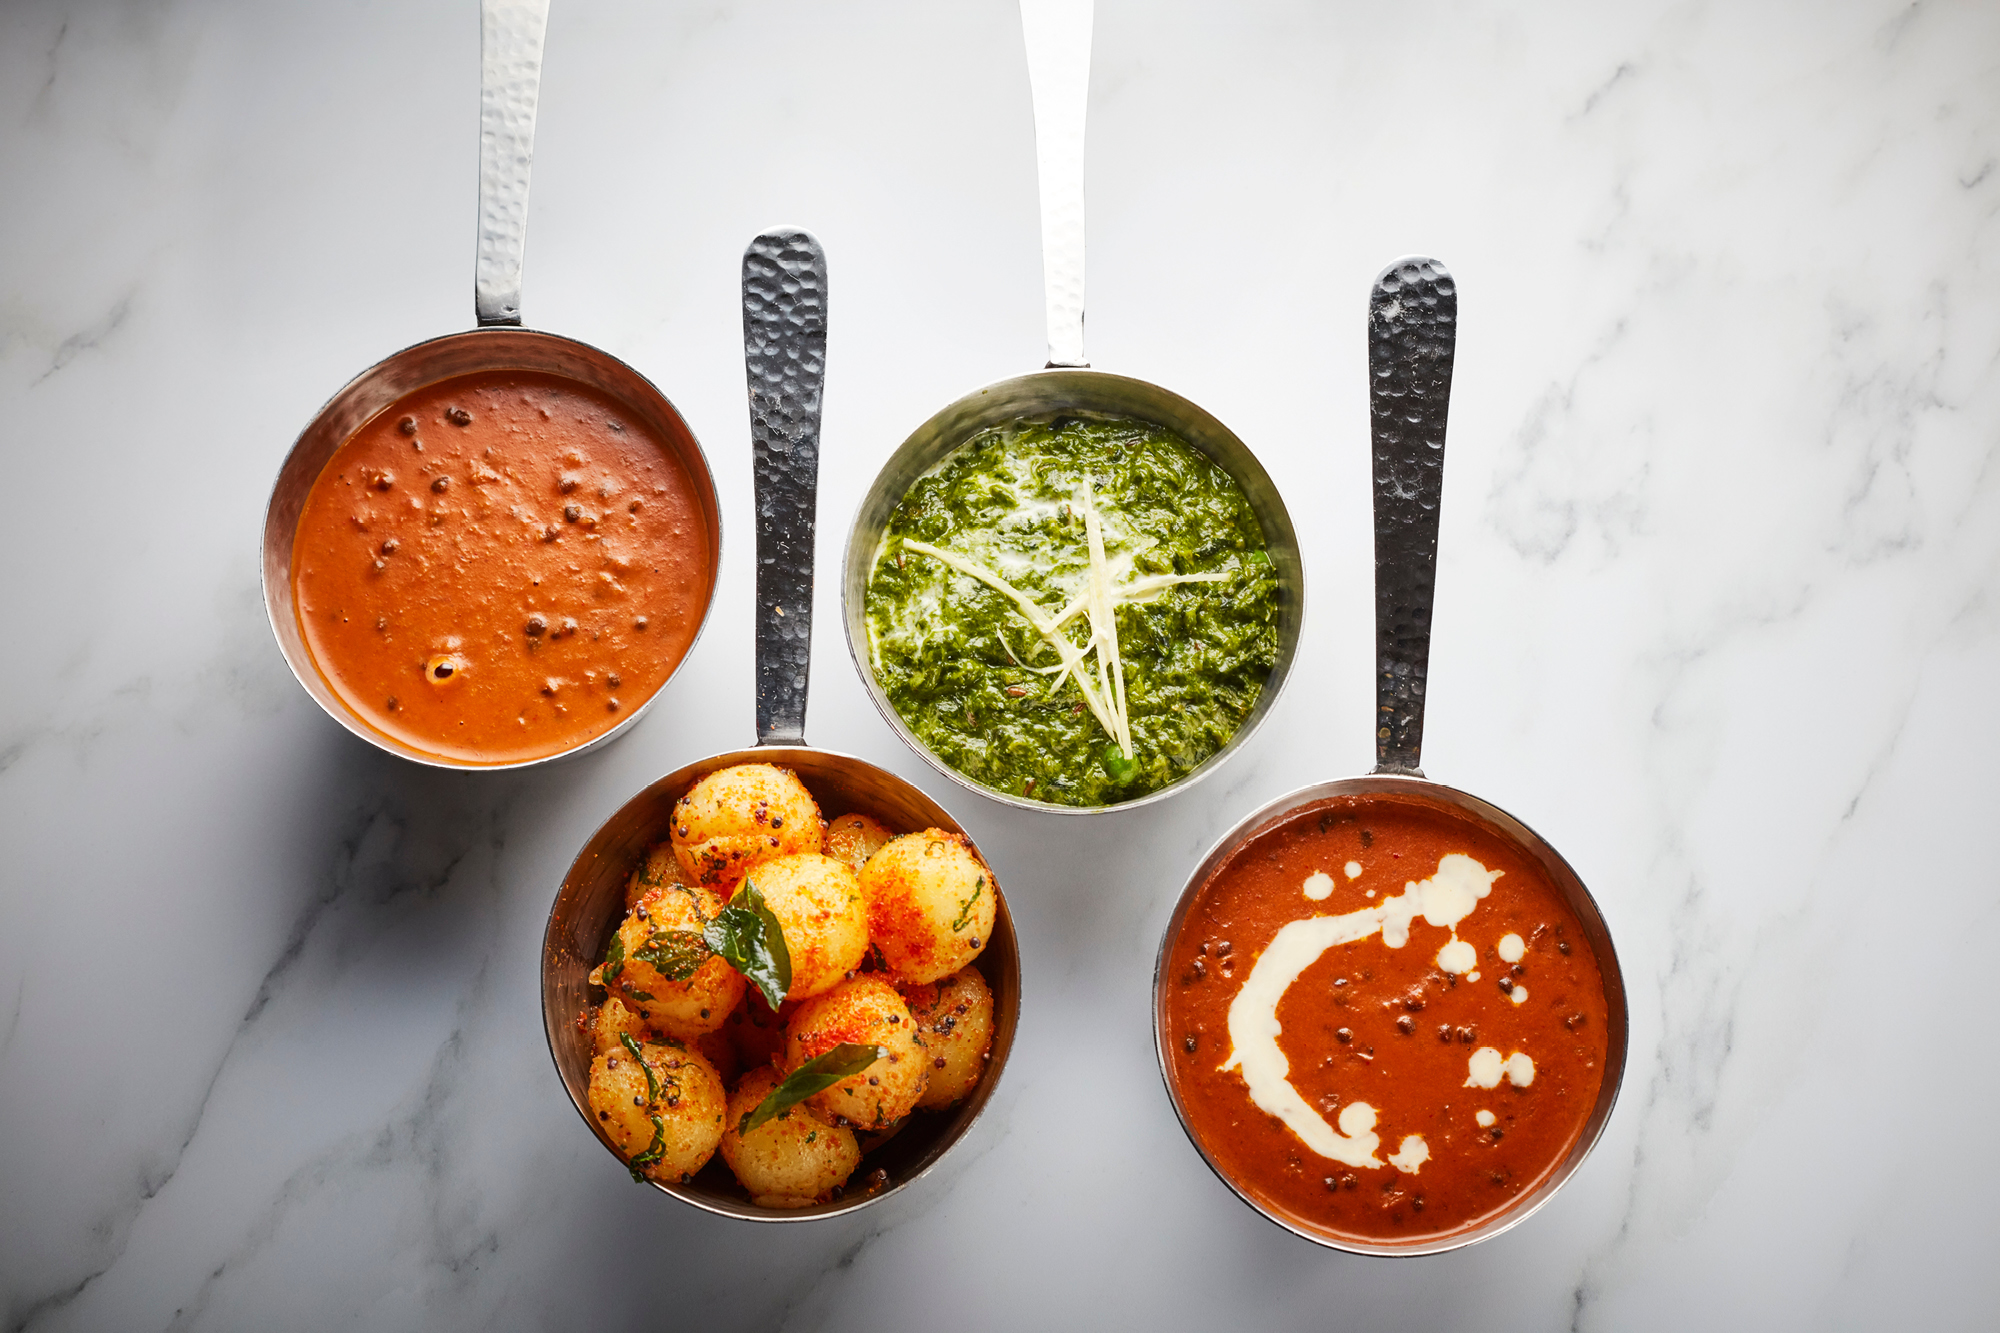 Benares' award-winning cuisine is now available for home delivery